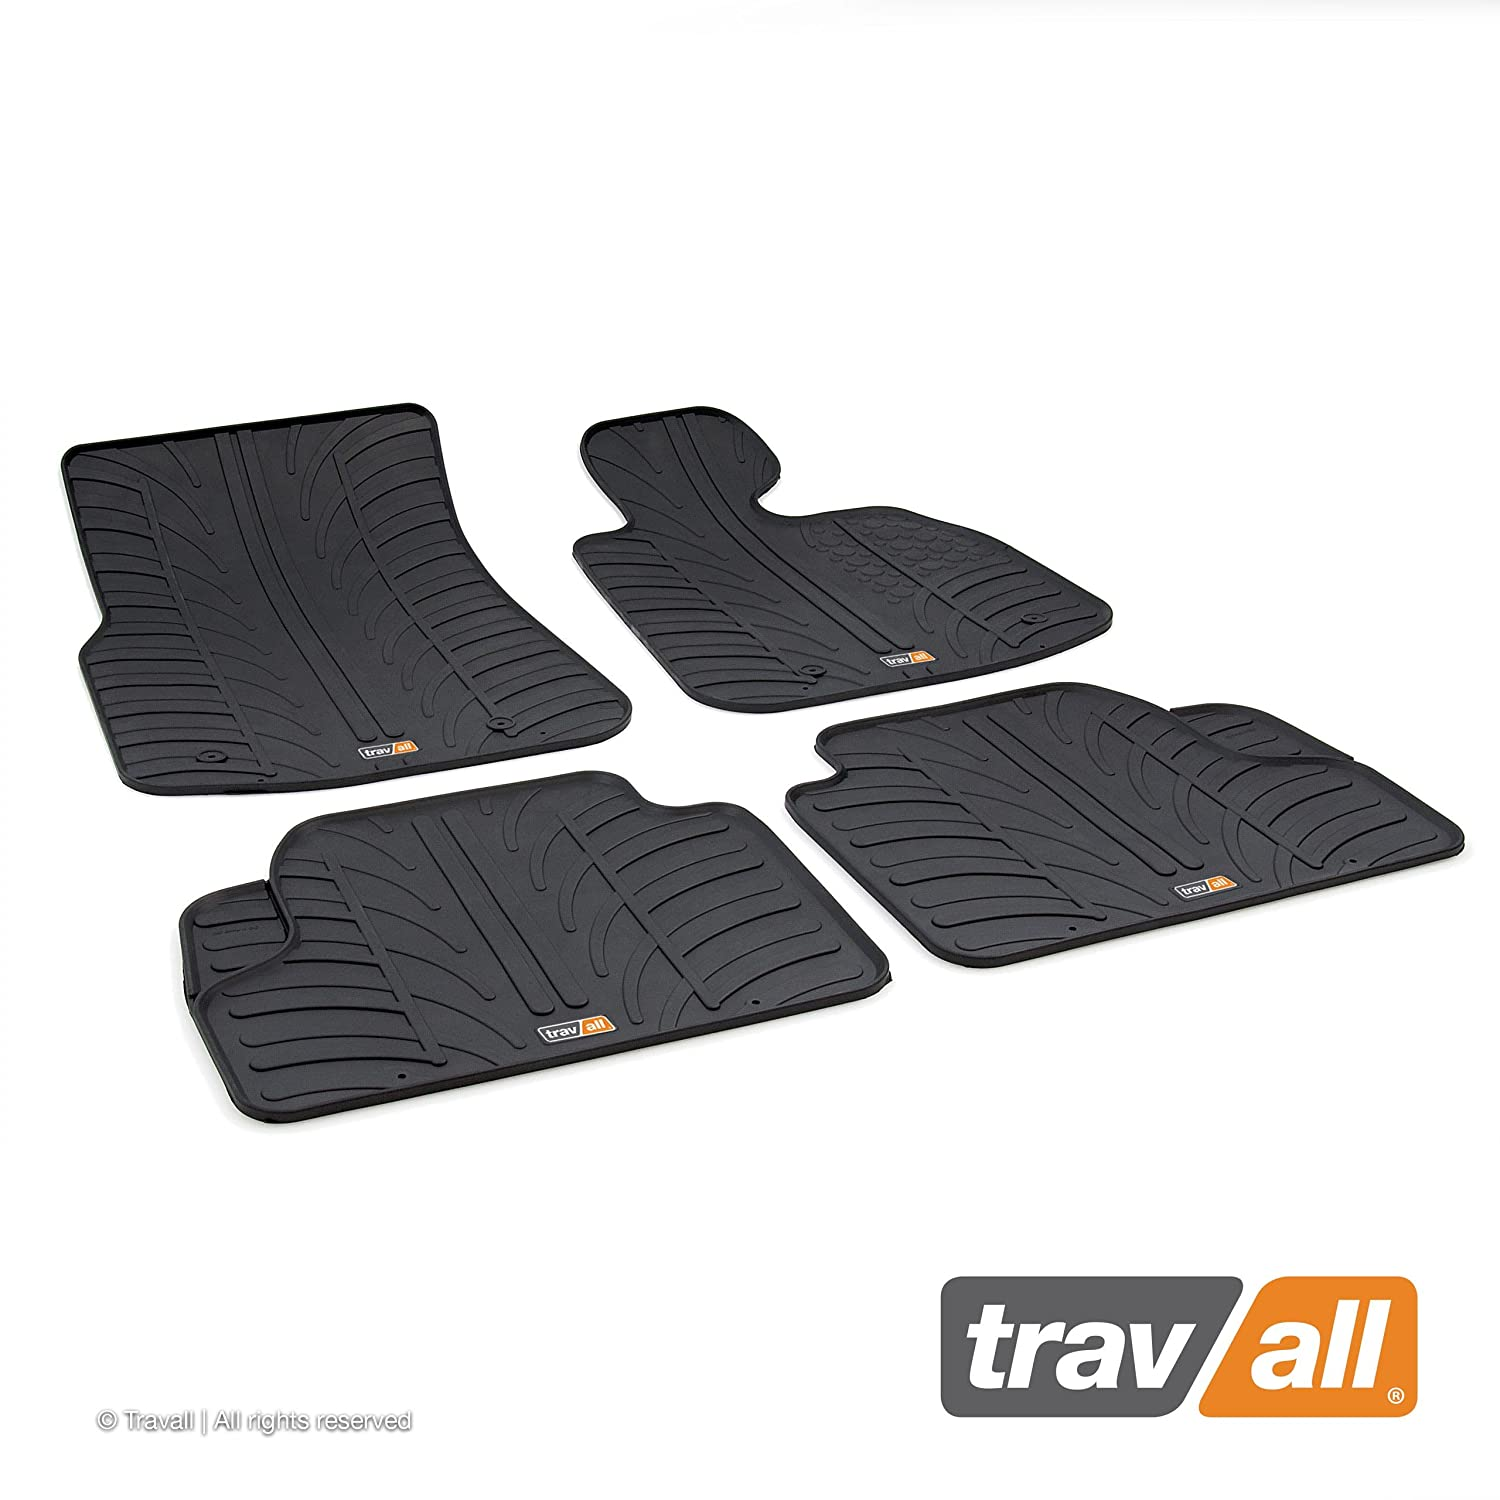 Travall Mats TRM1024R - Vehicle-Specific Rubber Floor Car Mats